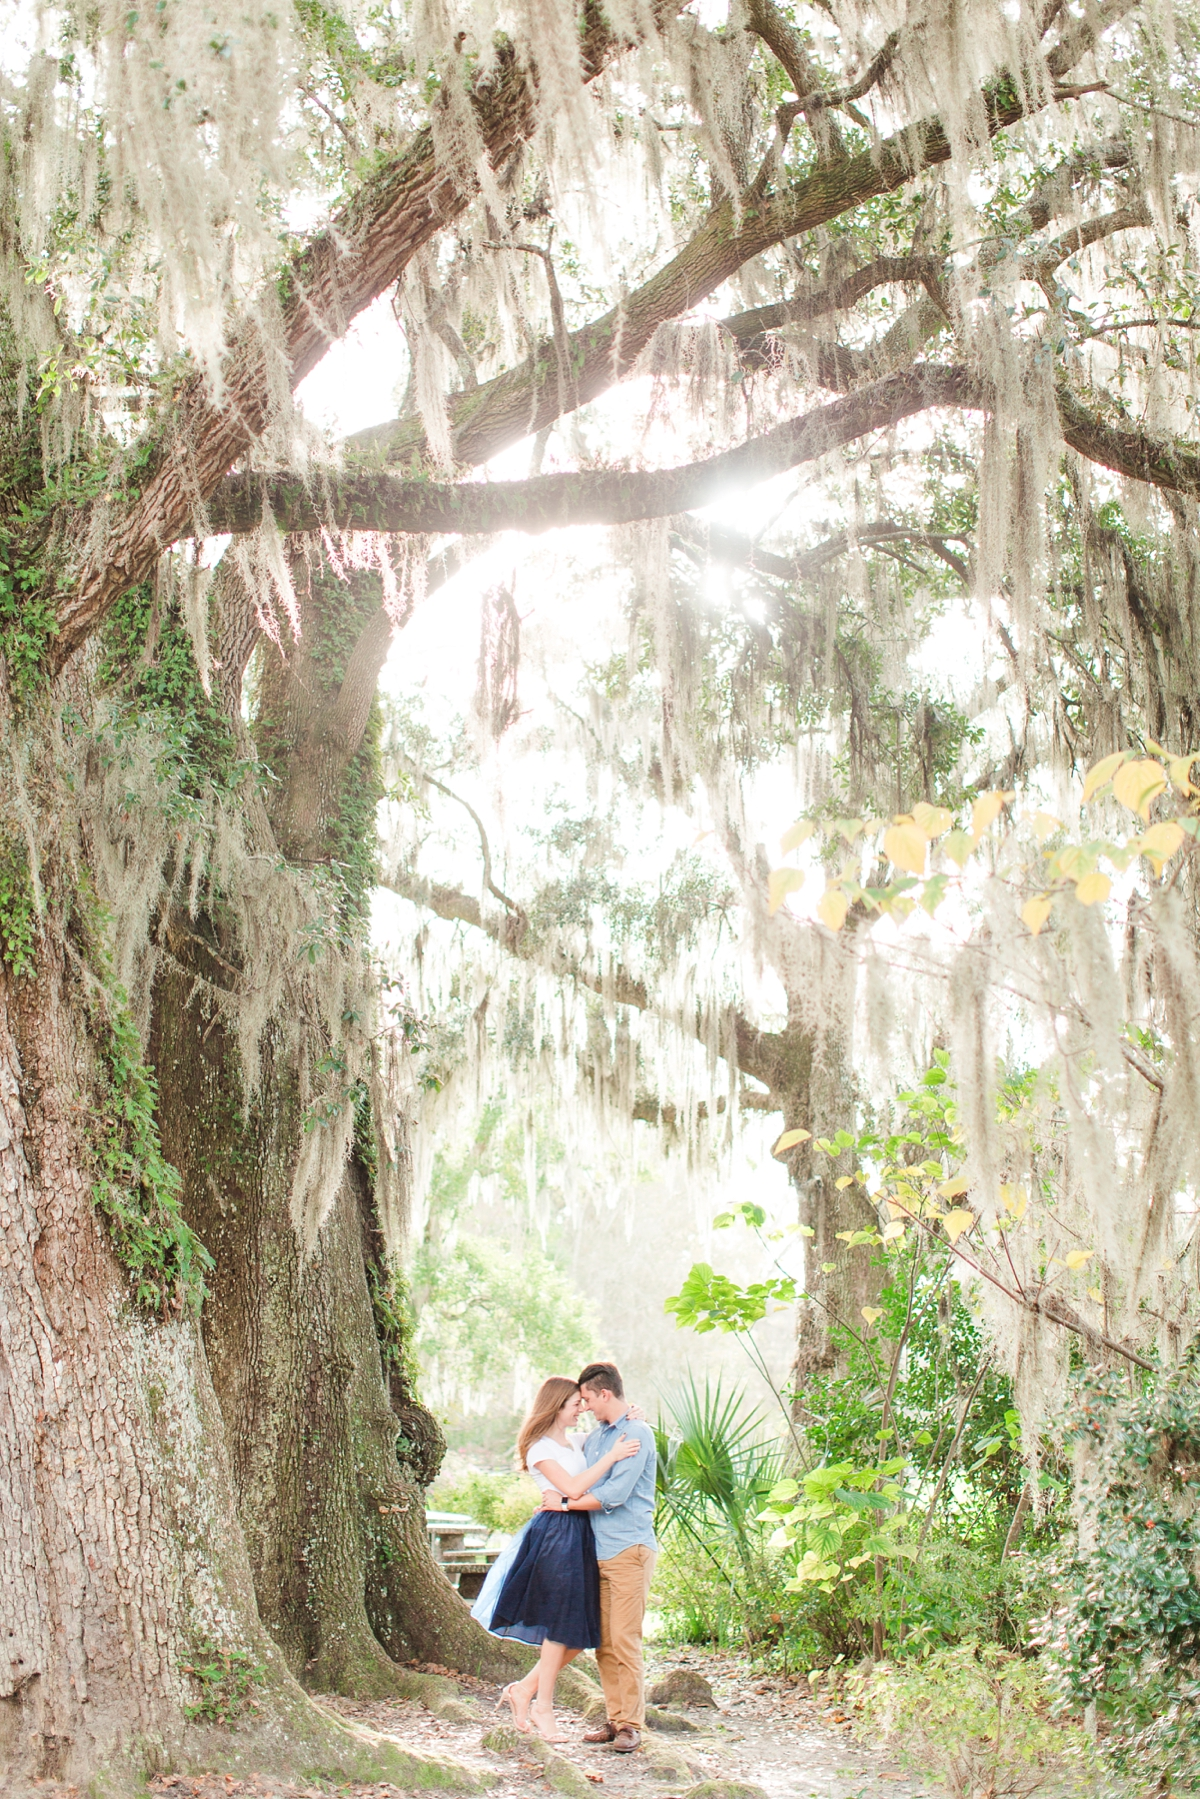 Charleston Travels. Must see tourist locations, site seeing in Low Country! Magnolia Plantation Portraits by Katelyn James Photography